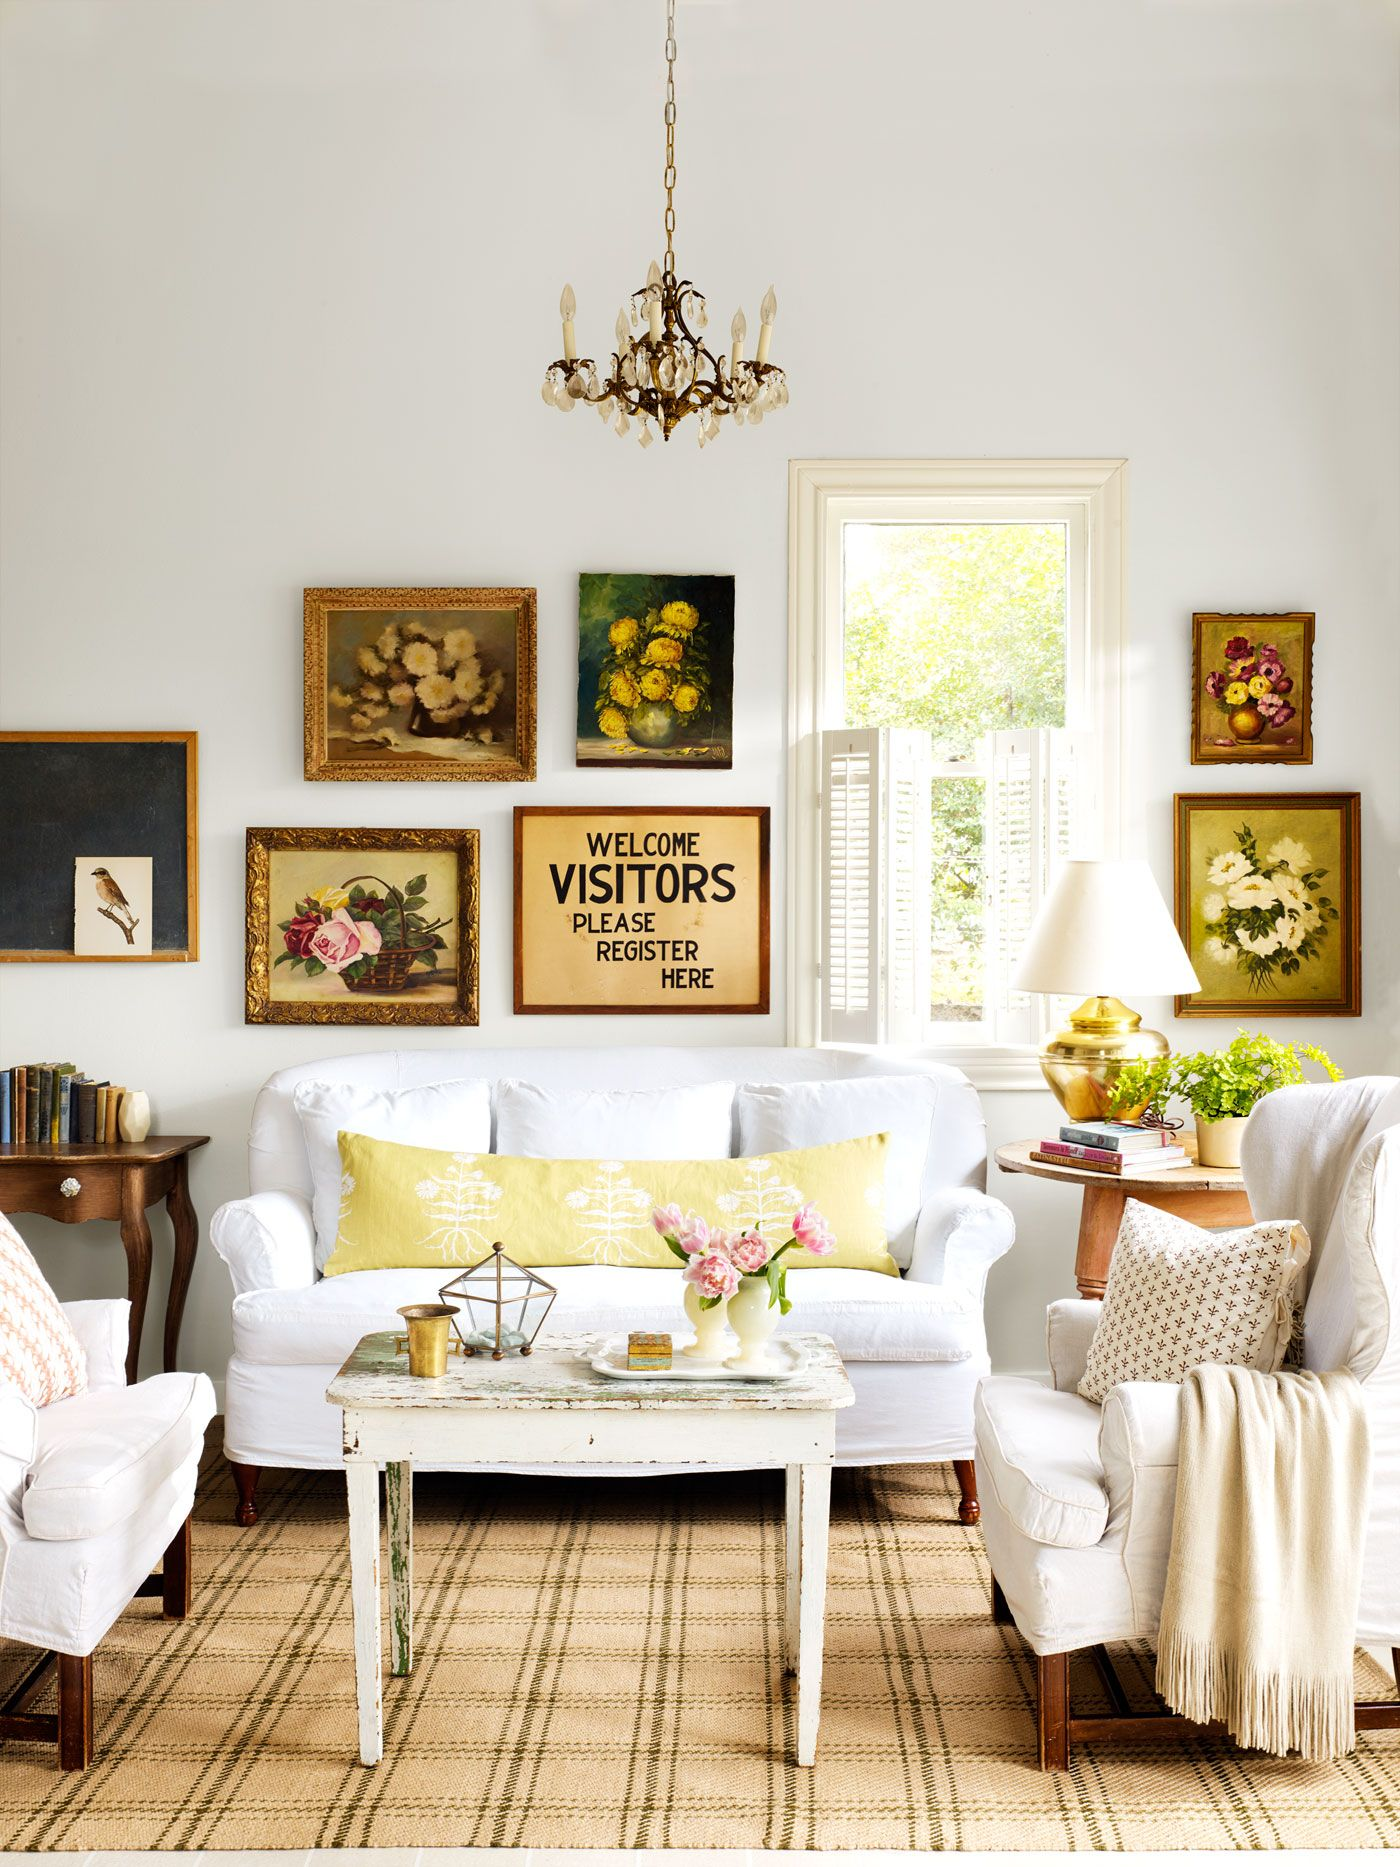 Wall Decor Stores 10 Ways To Create Downhome Charm On A Dime  Gallery Wall Thrift